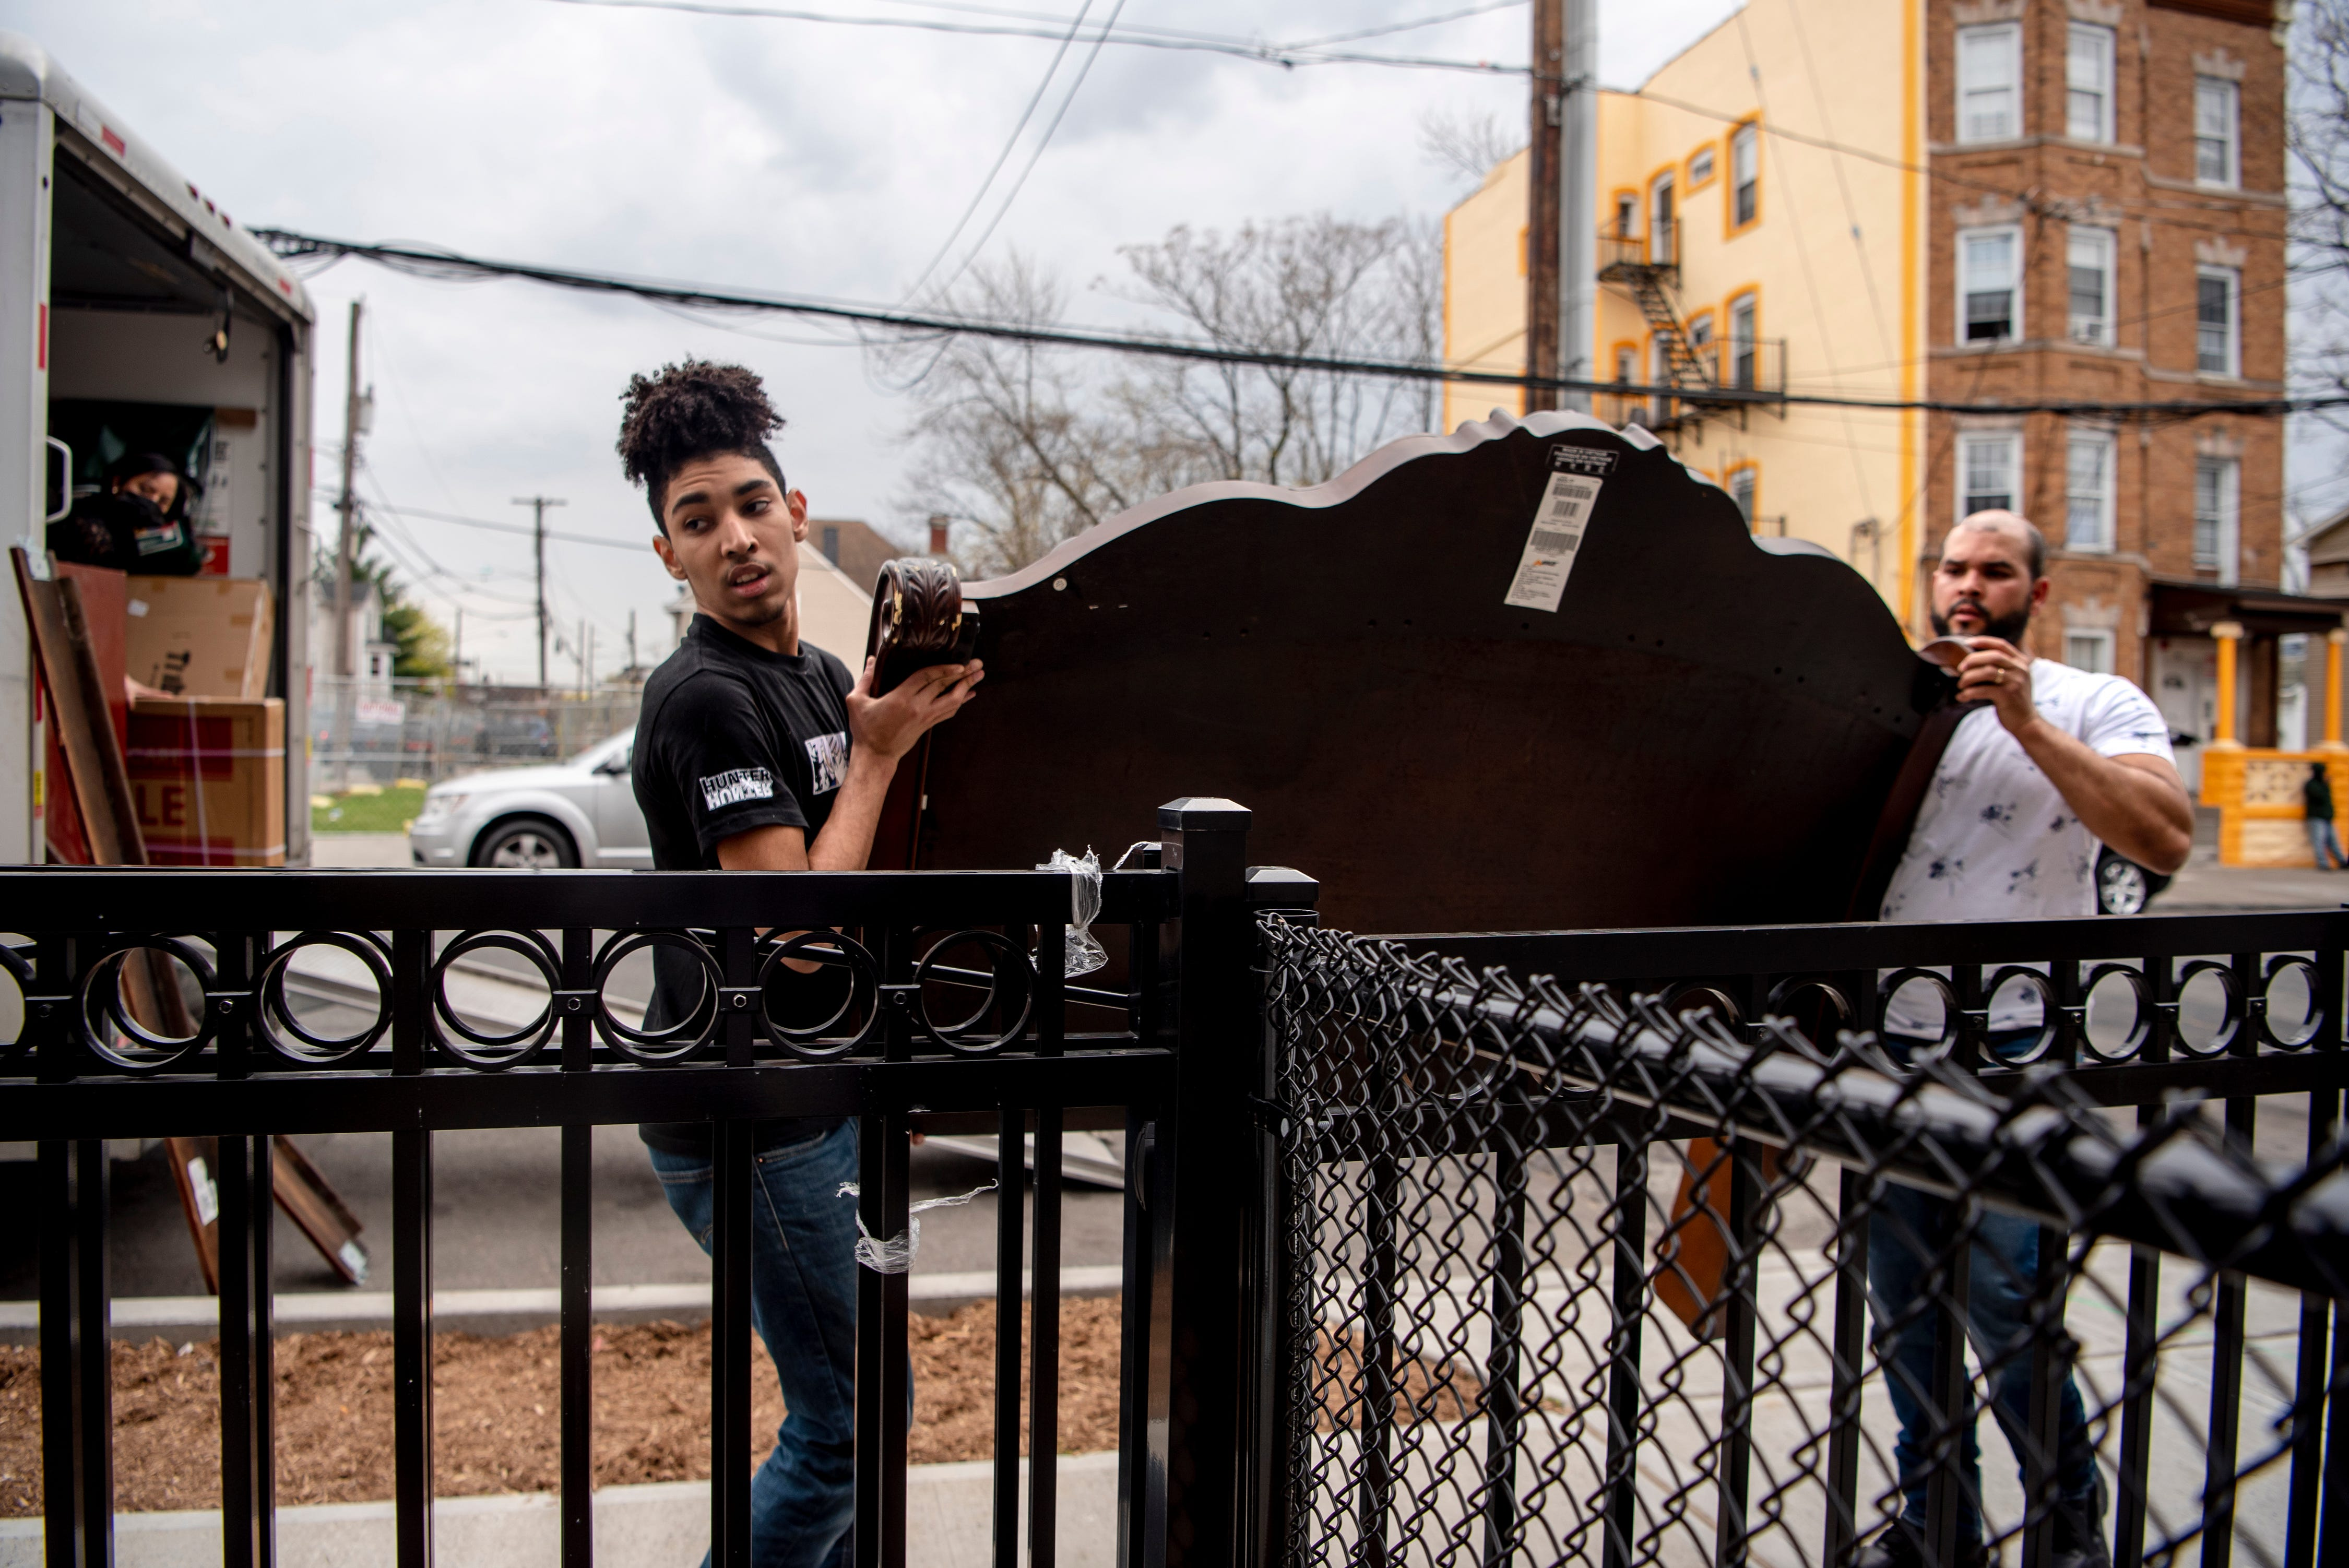 Carlos De Los Santos, 17 and his stepfather Ronny Brito unpack the moving van outside of the family's new Habitat for Humanity home on Hamilton Ave. in Paterson on April 9, 2021.